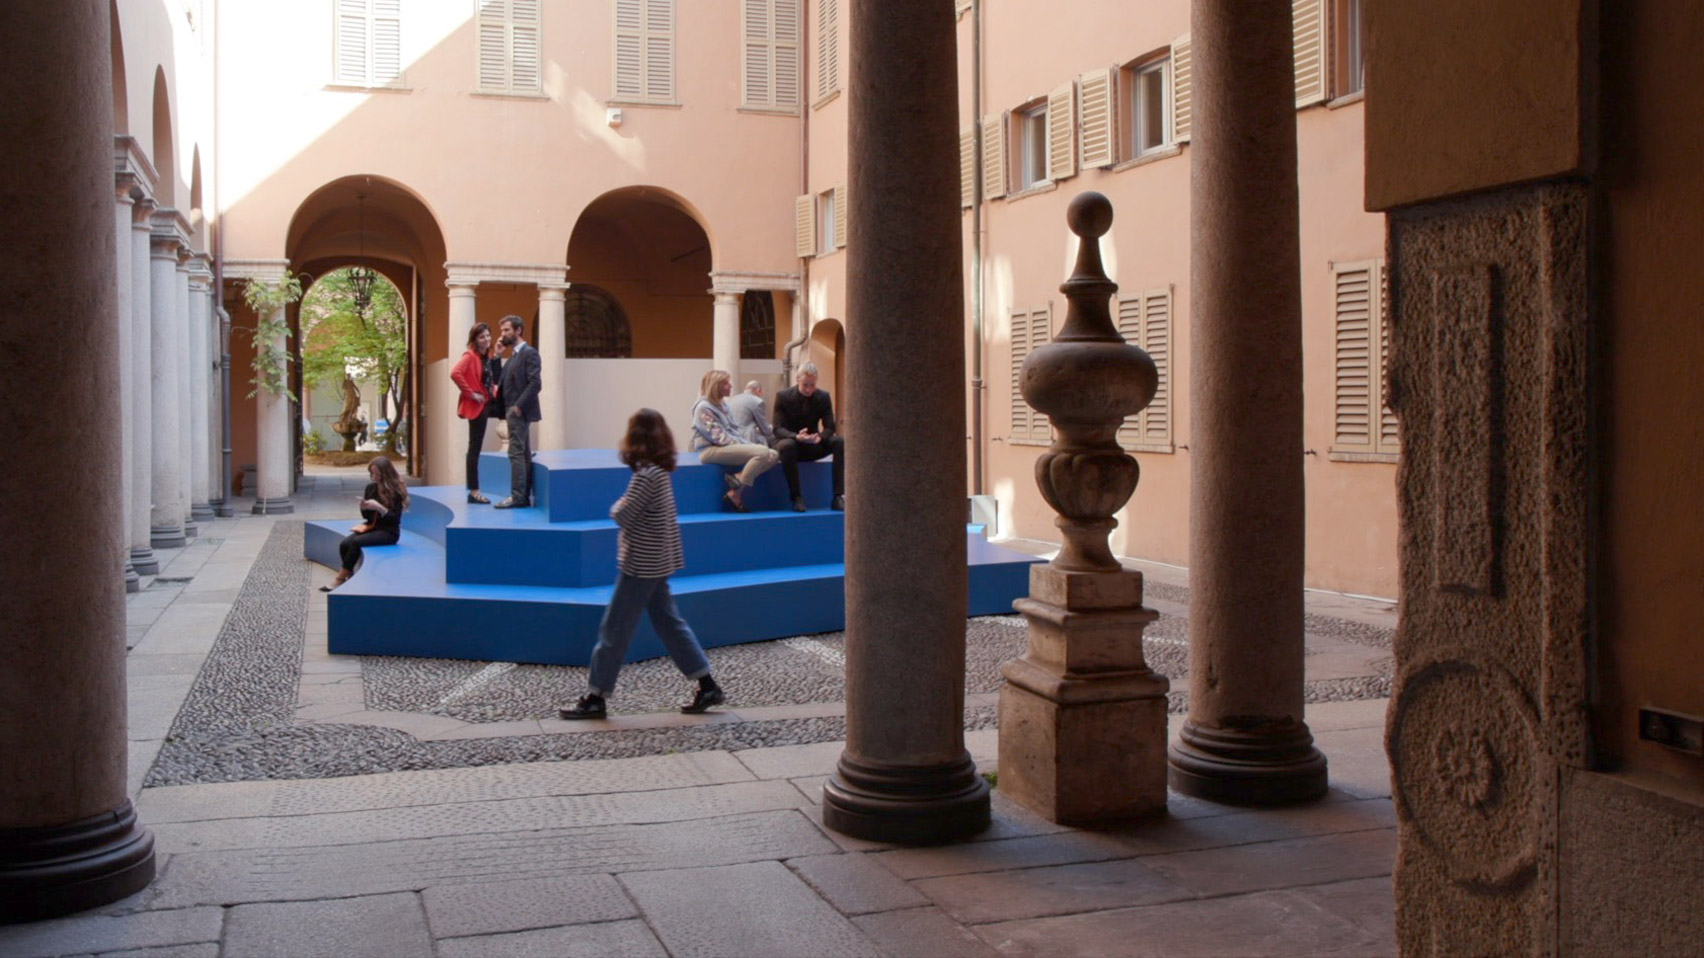 Installed in the courtyard is an amphitheatre which members of the public can access from Via Alessandro Manzoni